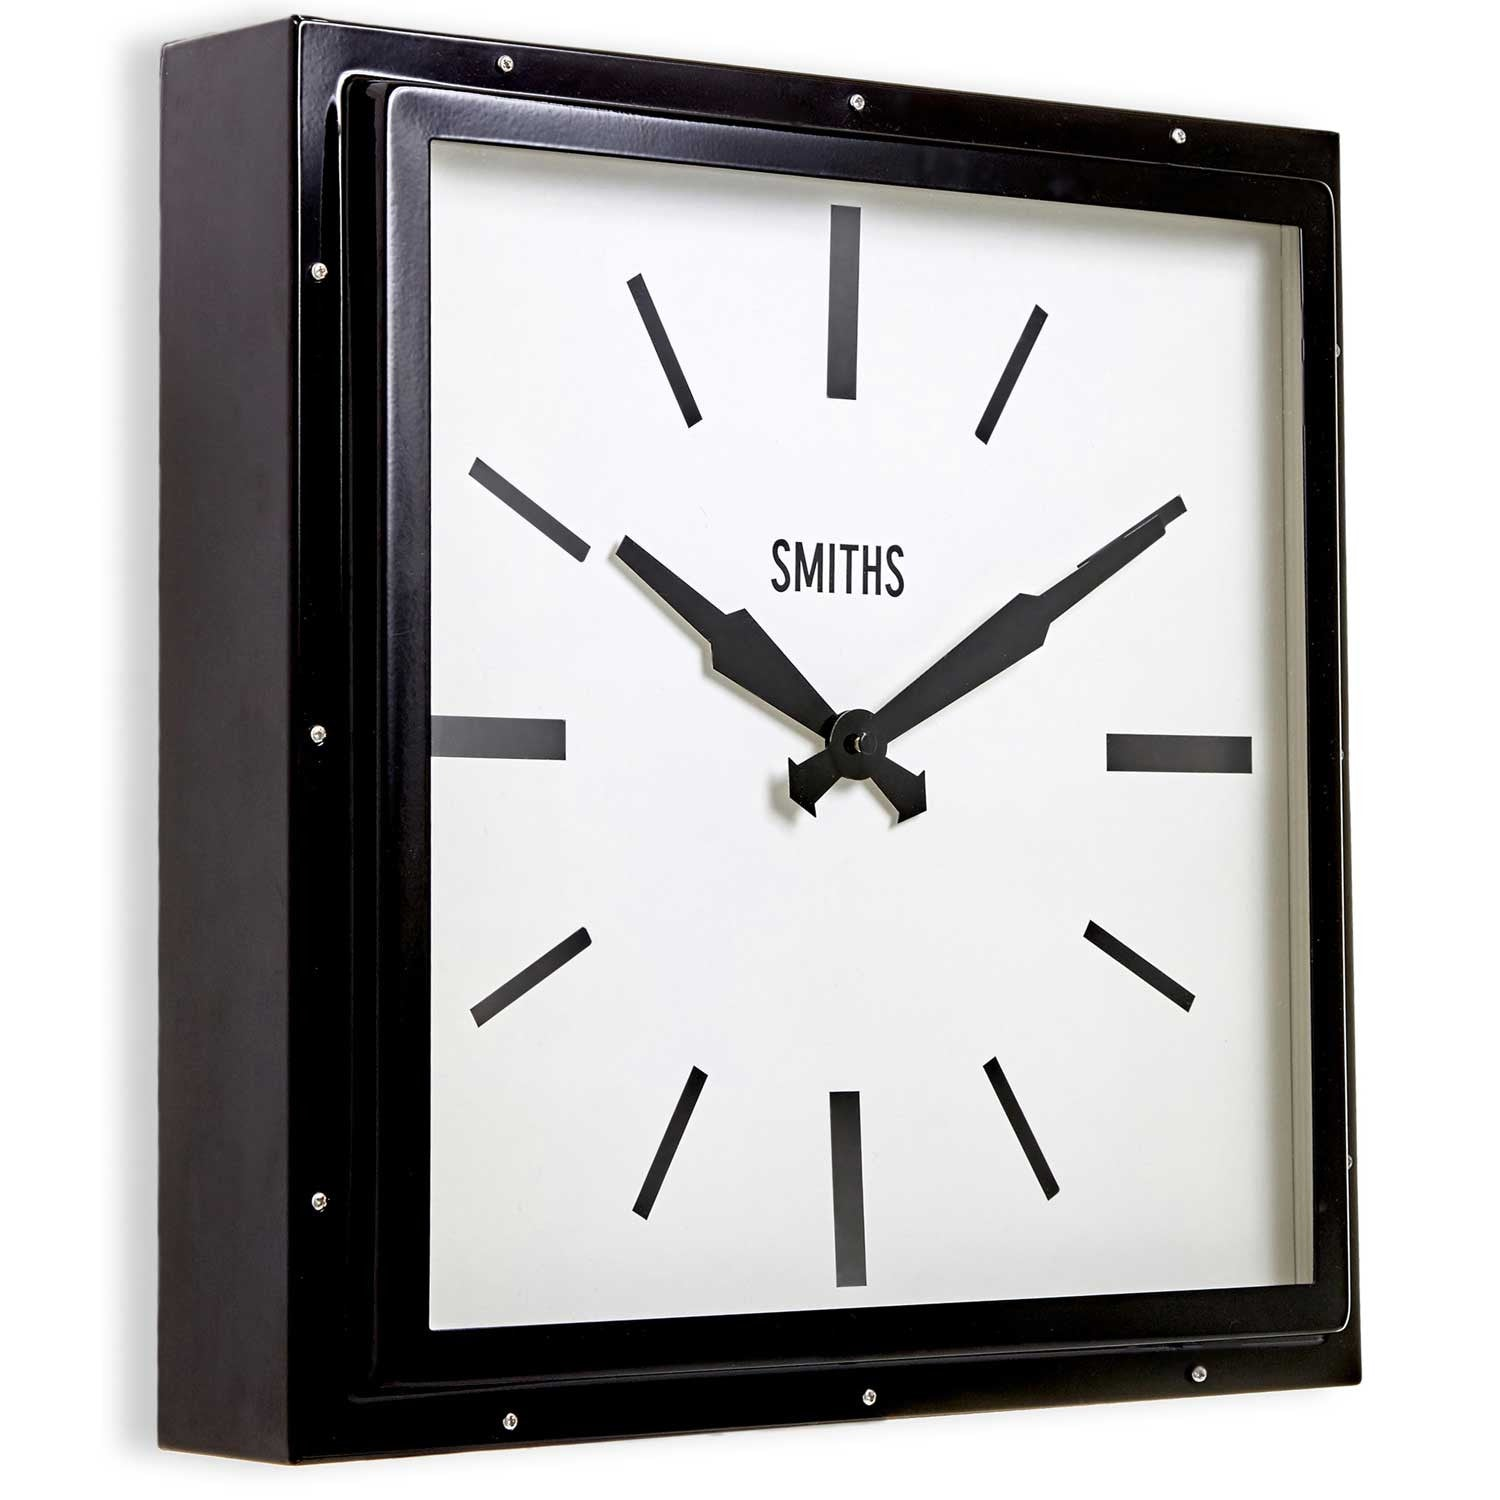 smiths modern square wall clock  cm  britain can make it -  smiths modern large square wall clock black side view